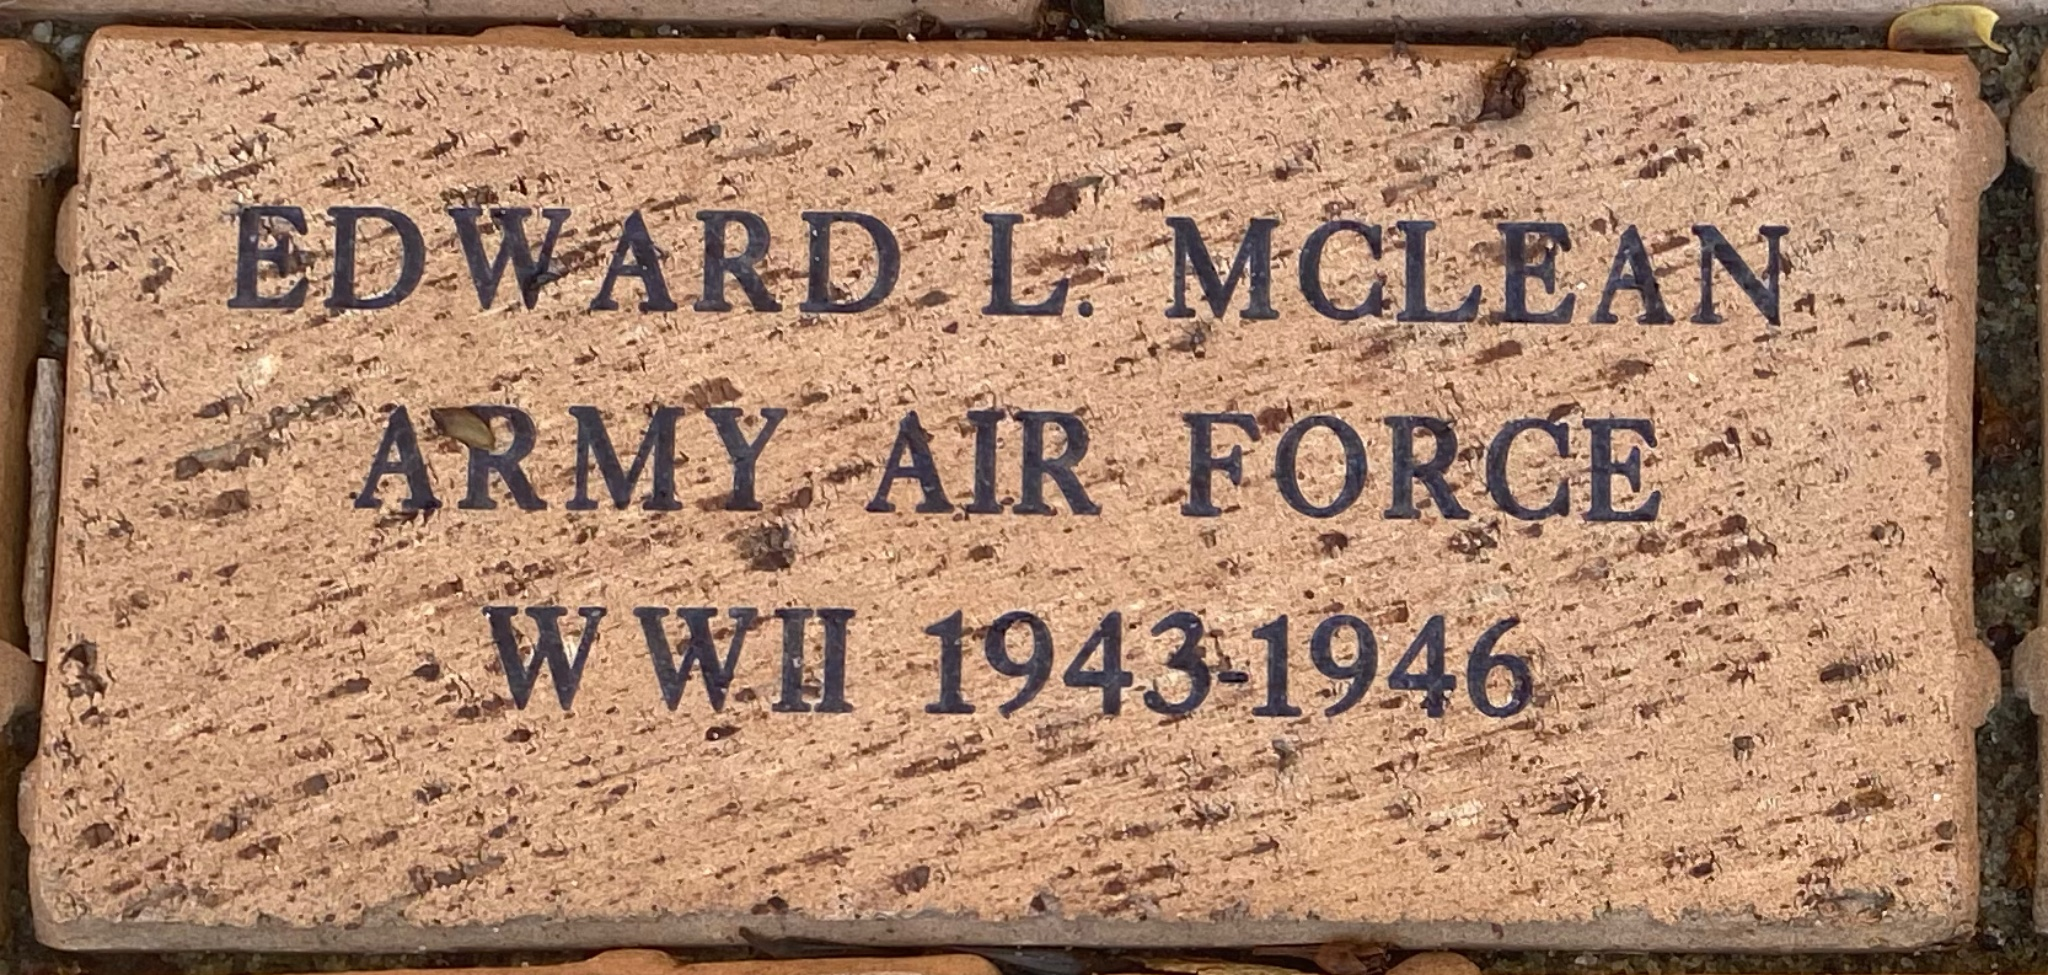 EDWARD L. MCLEAN ARMY AIR FORCE WWII 1943-1946